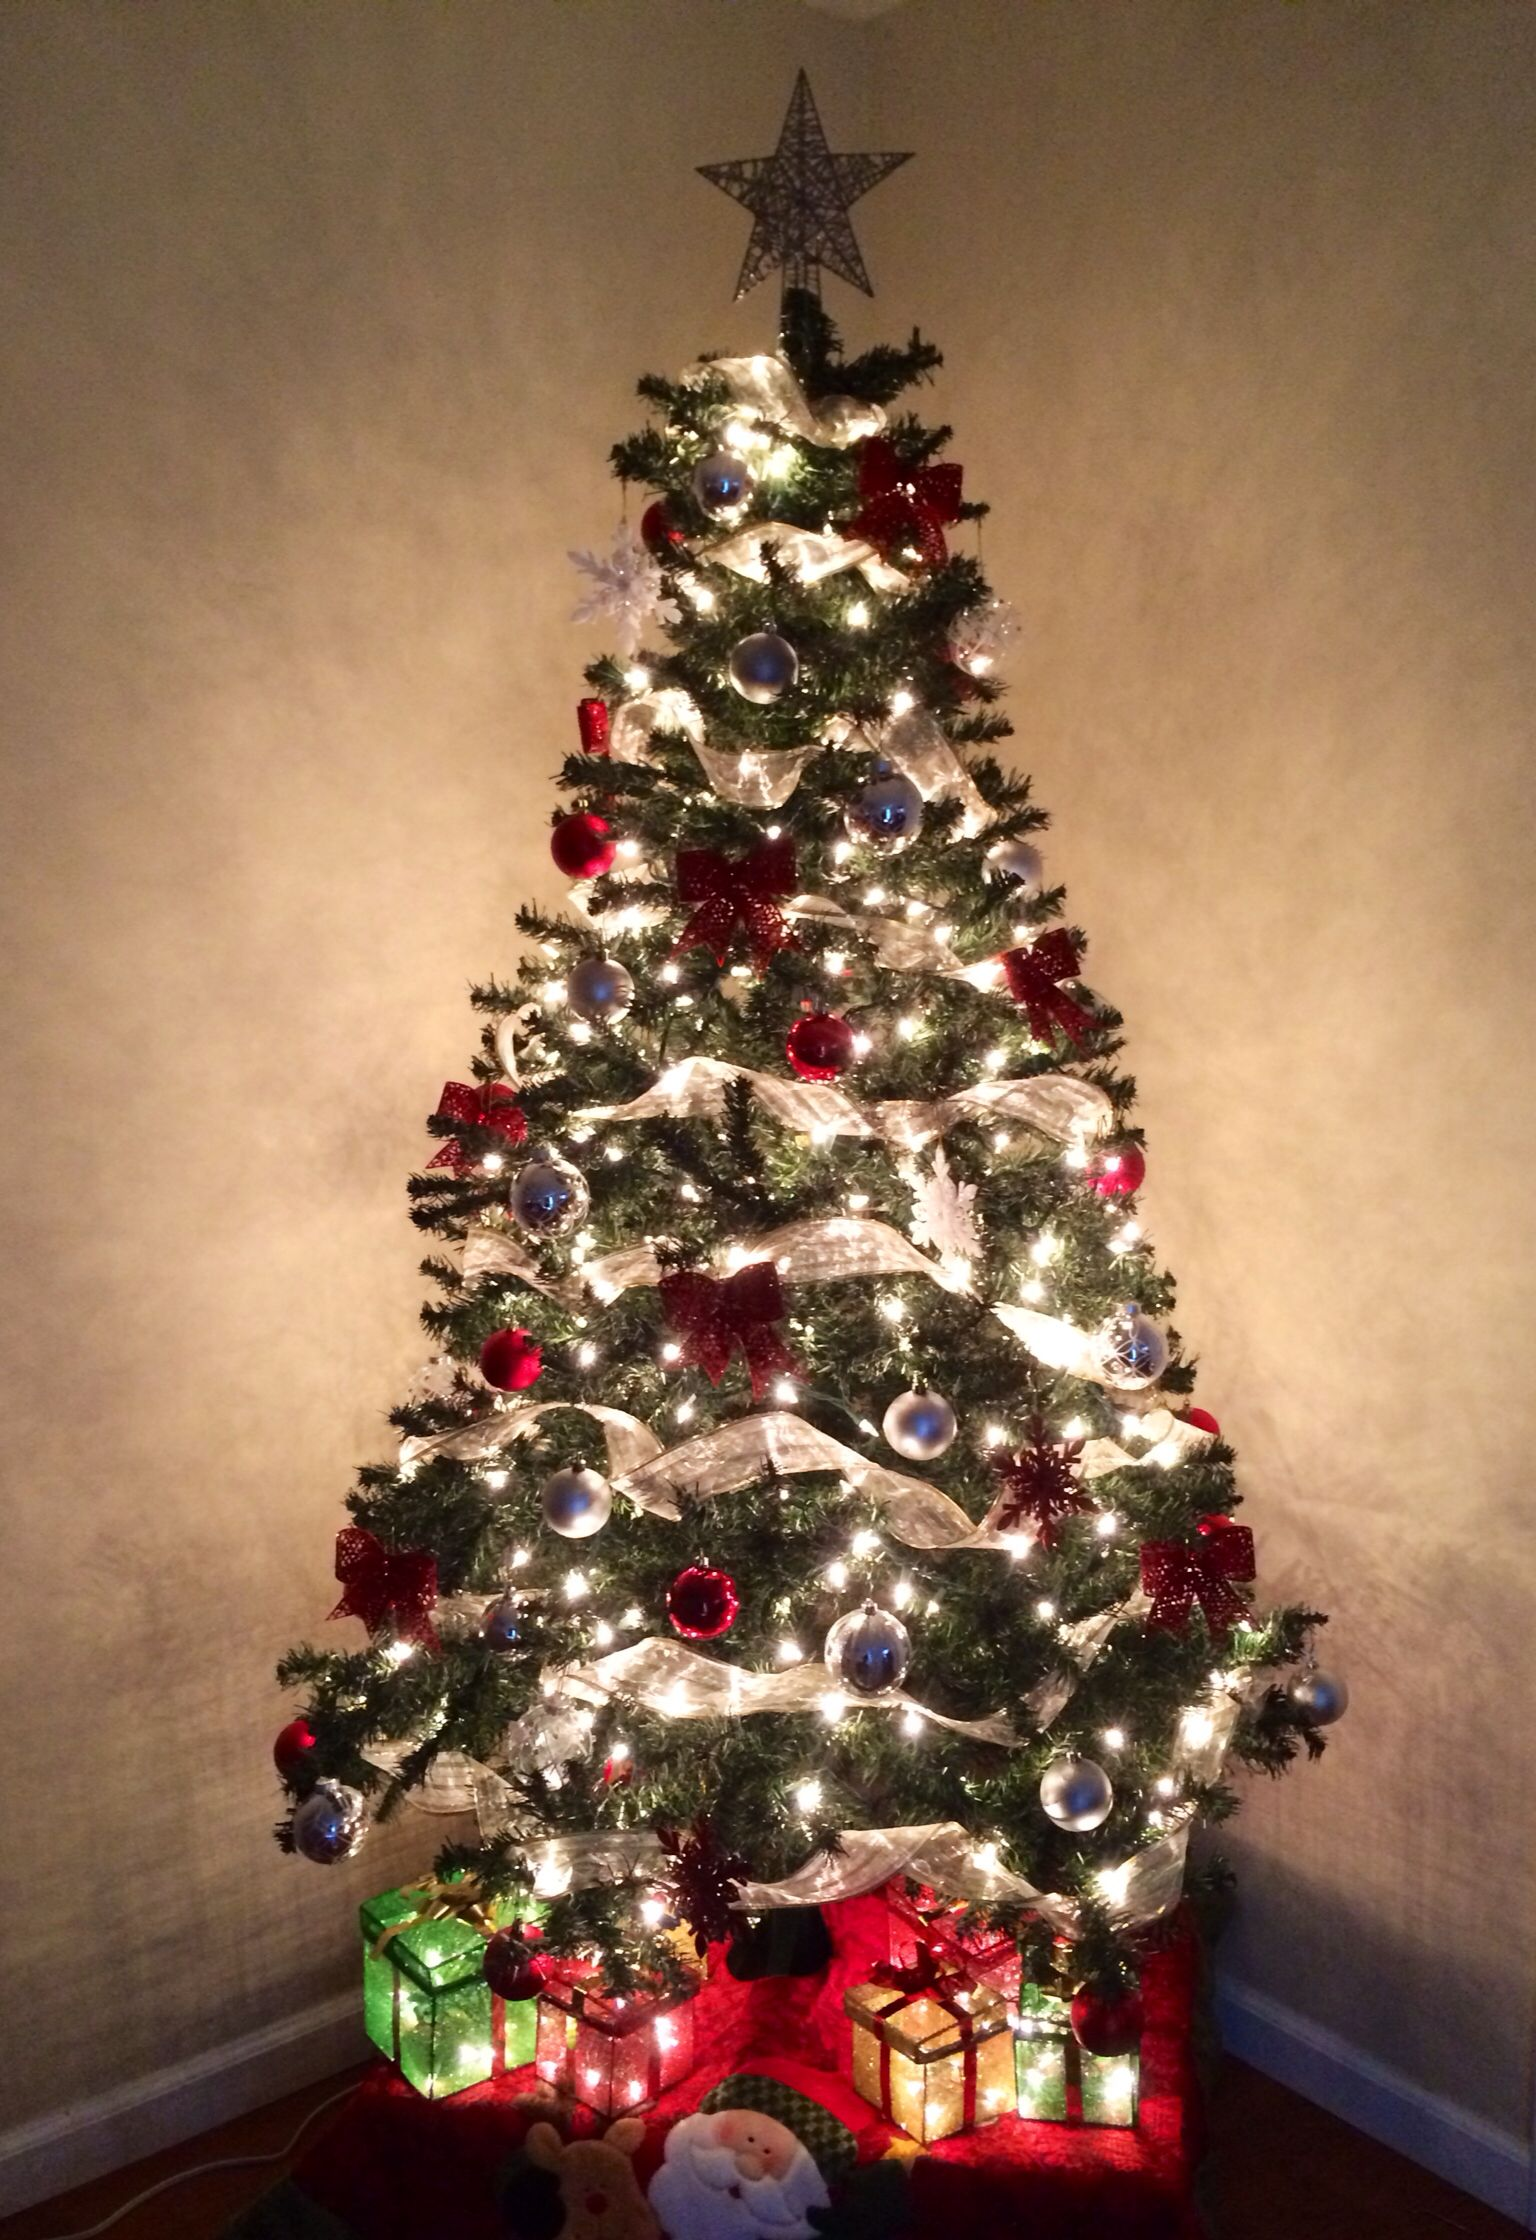 Kirkland Christmas tree look-a-like | Holidays | Pinterest ...